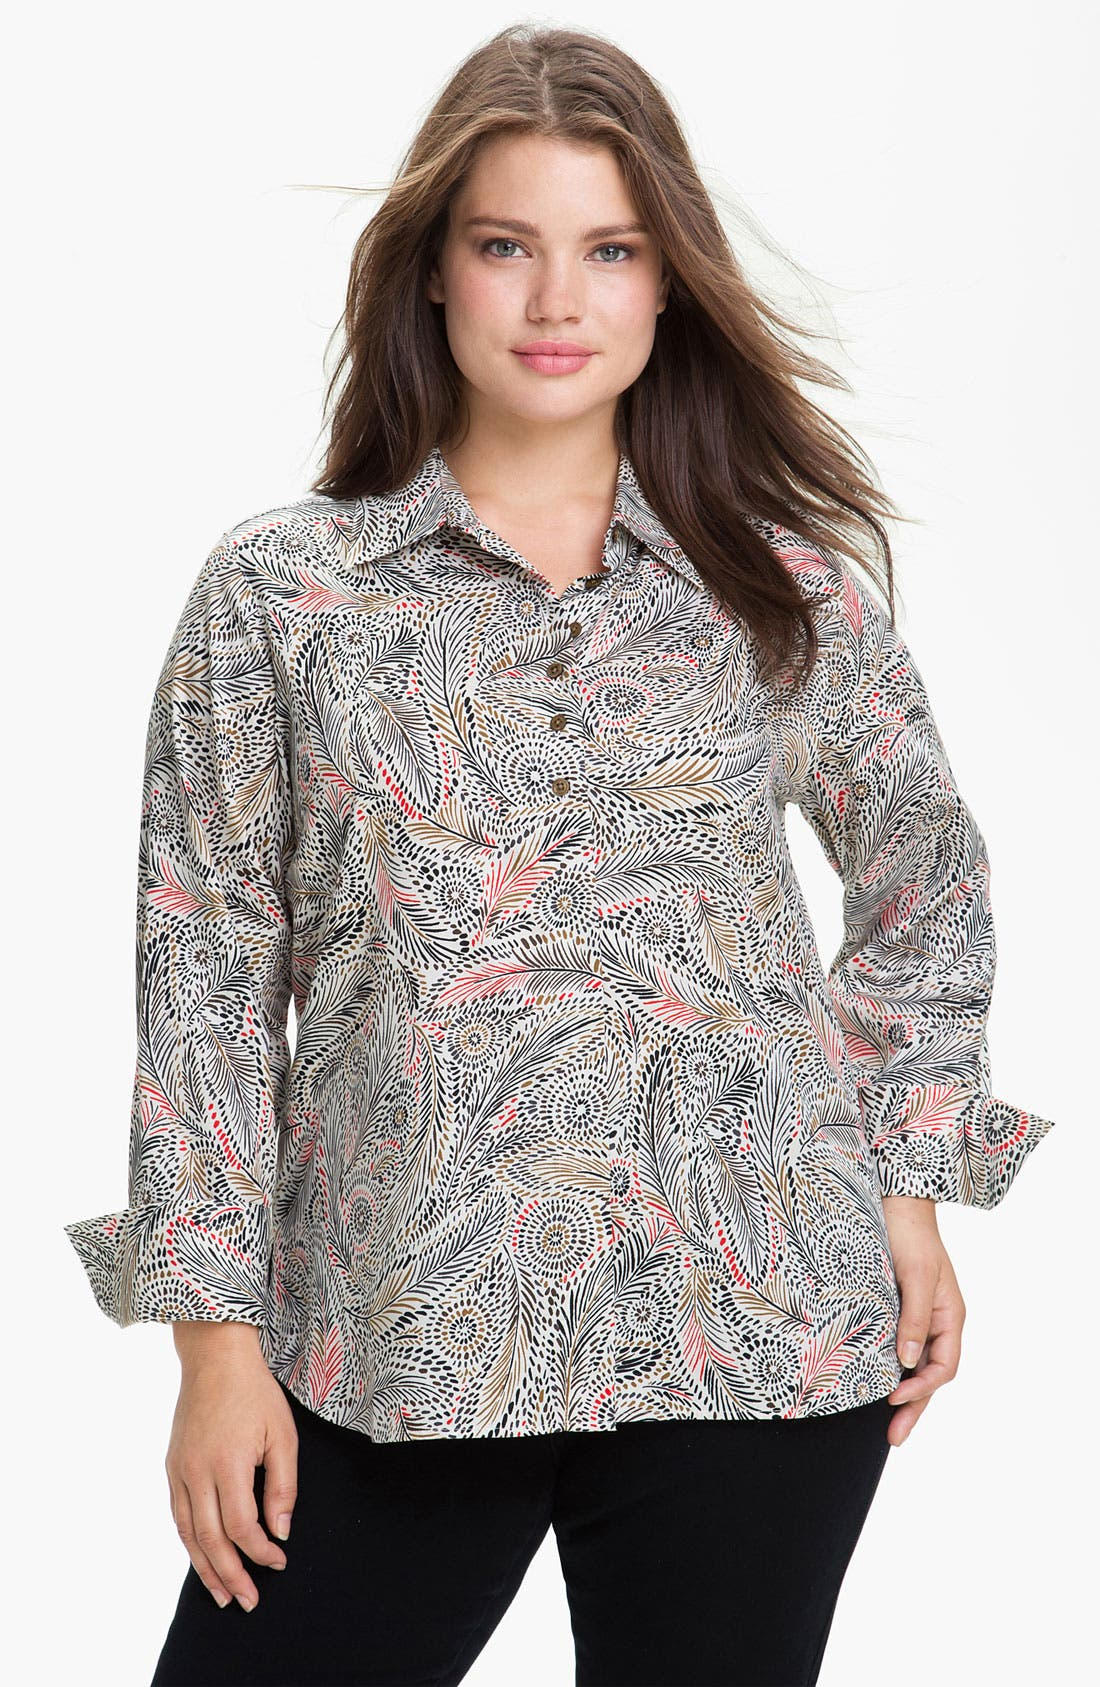 Main Image - Foxcroft Feather Print Wrinkle Free Shaped Shirt (Plus)